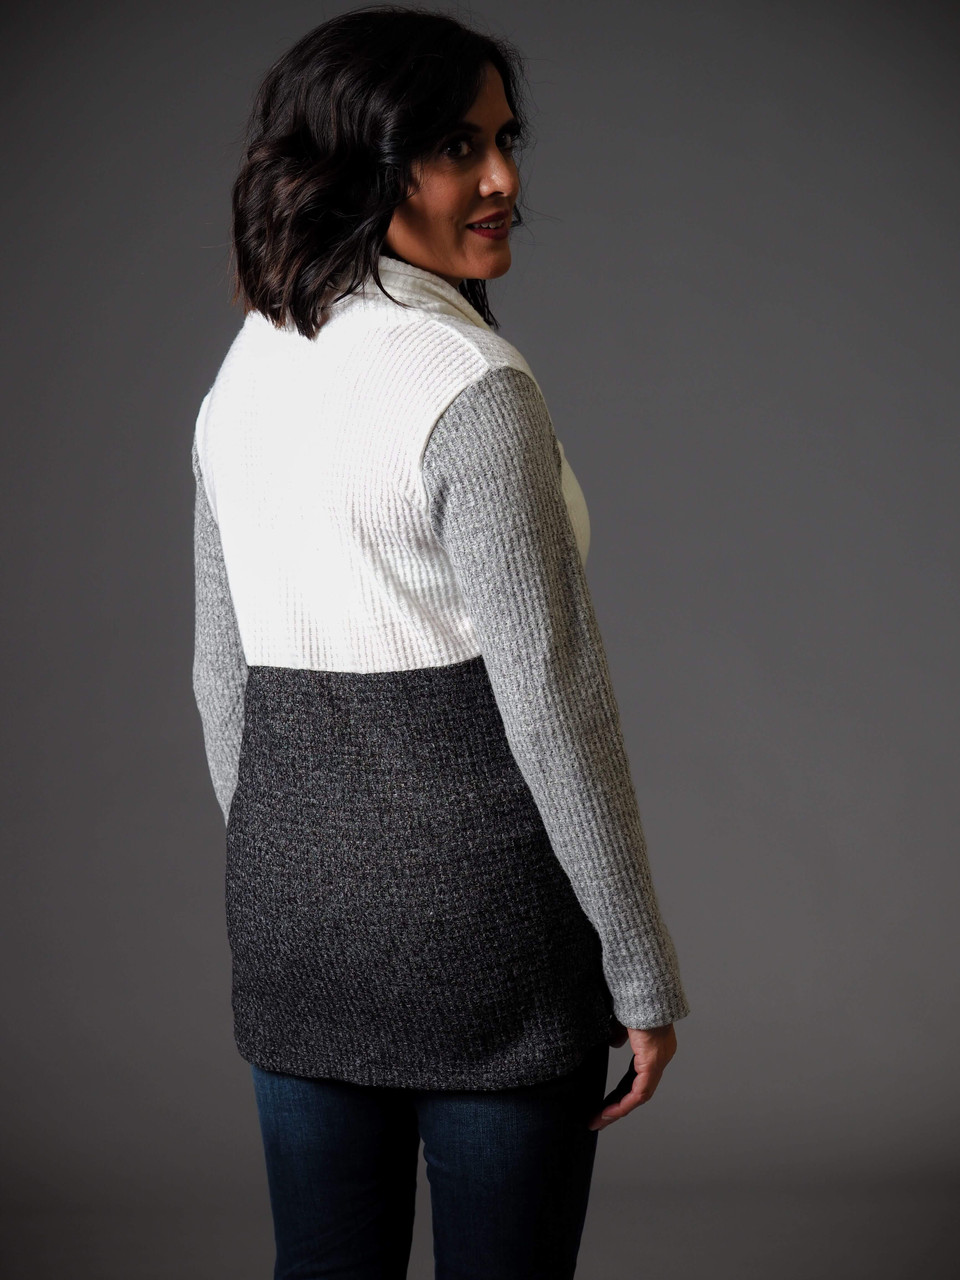 grey charcoal and white soft knit cowl neck sweater